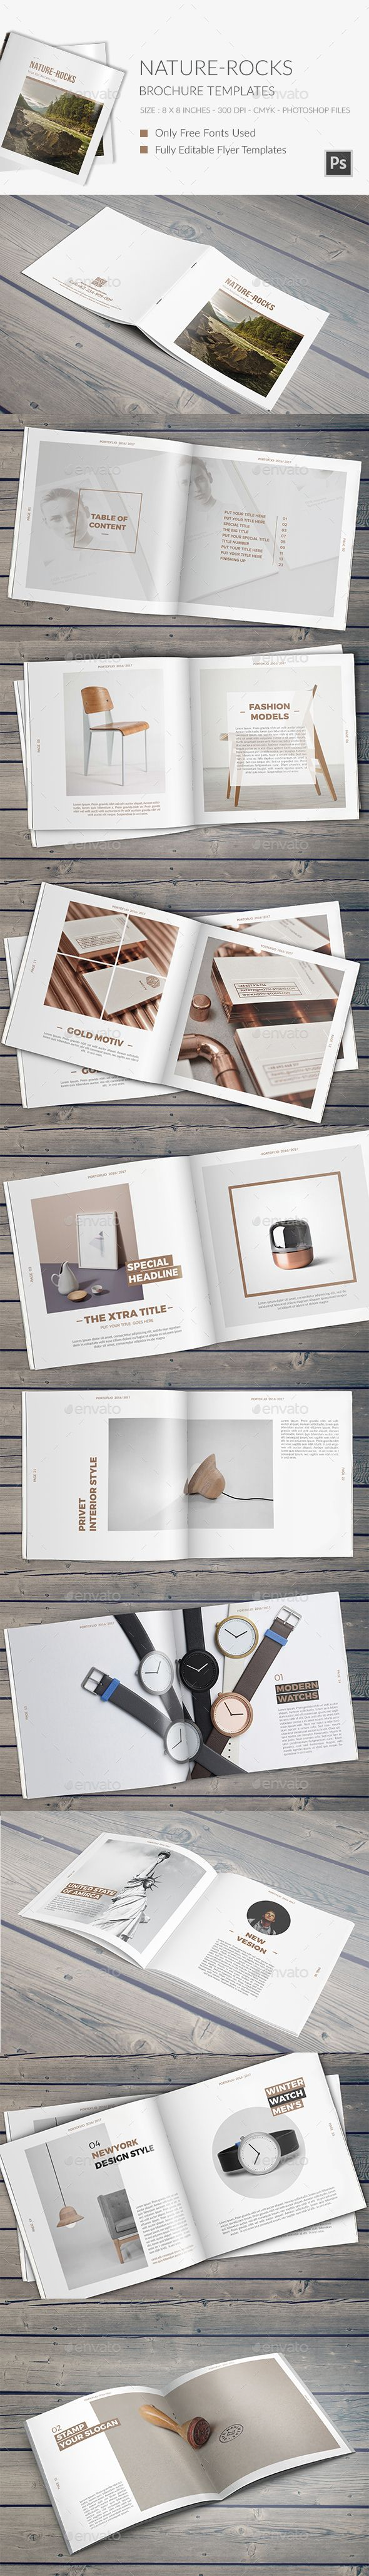 Nature-Rocks Square Portfolio Brochure Template PSD #design Download: http://graphicriver.net/item/naturerocks-square-portfolio-brochure-template/13542410?ref=ksioks